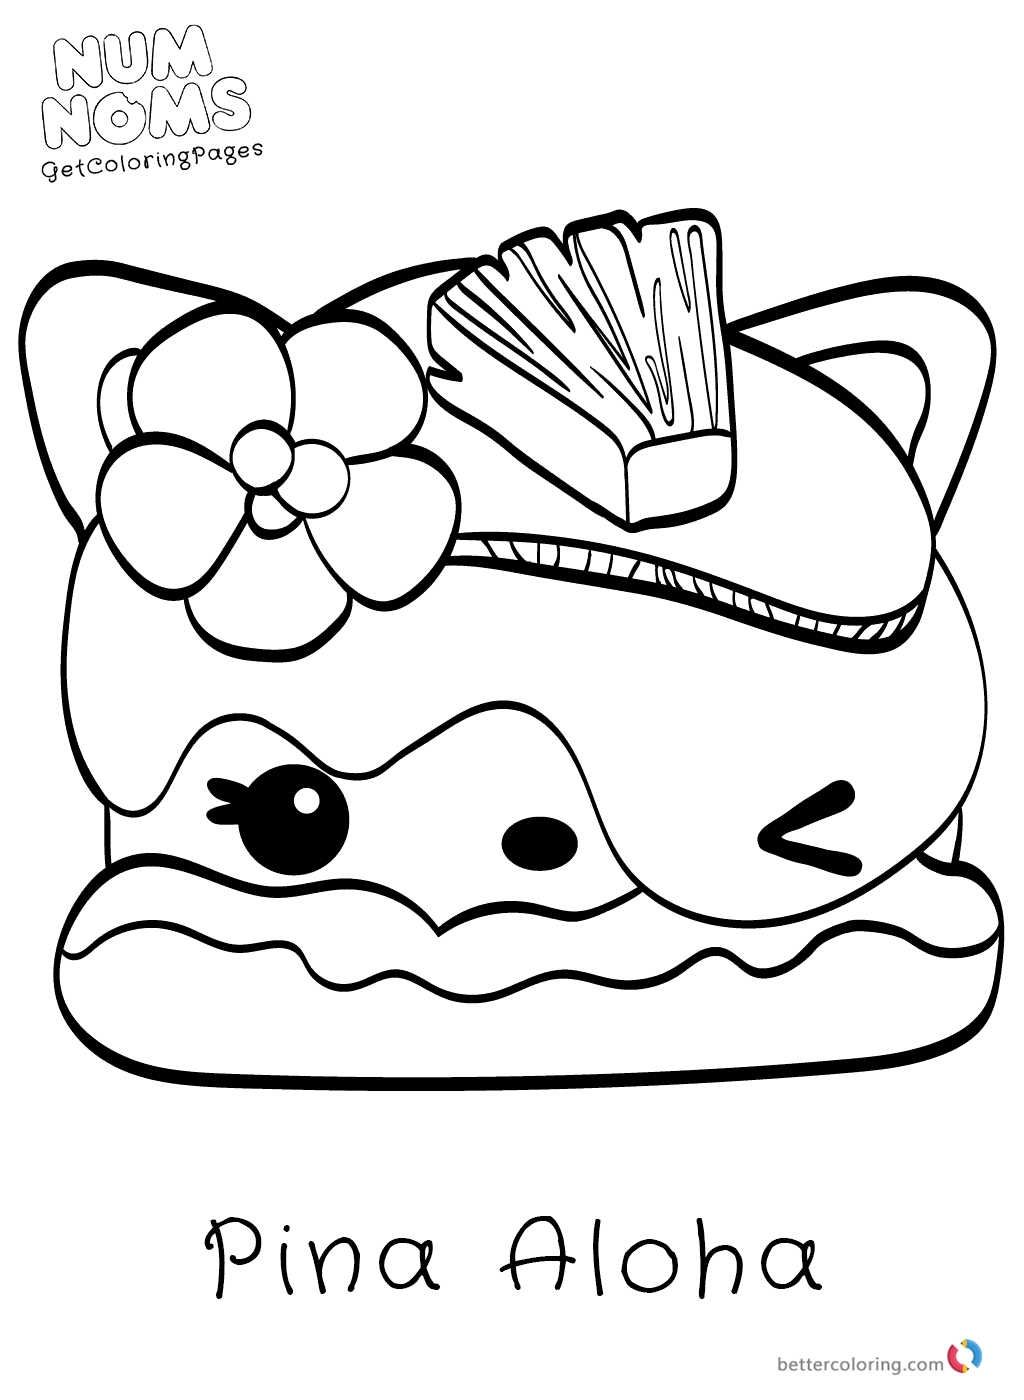 30 Coloring Pages Num Noms Cute Coloring Pages Coloring Pages